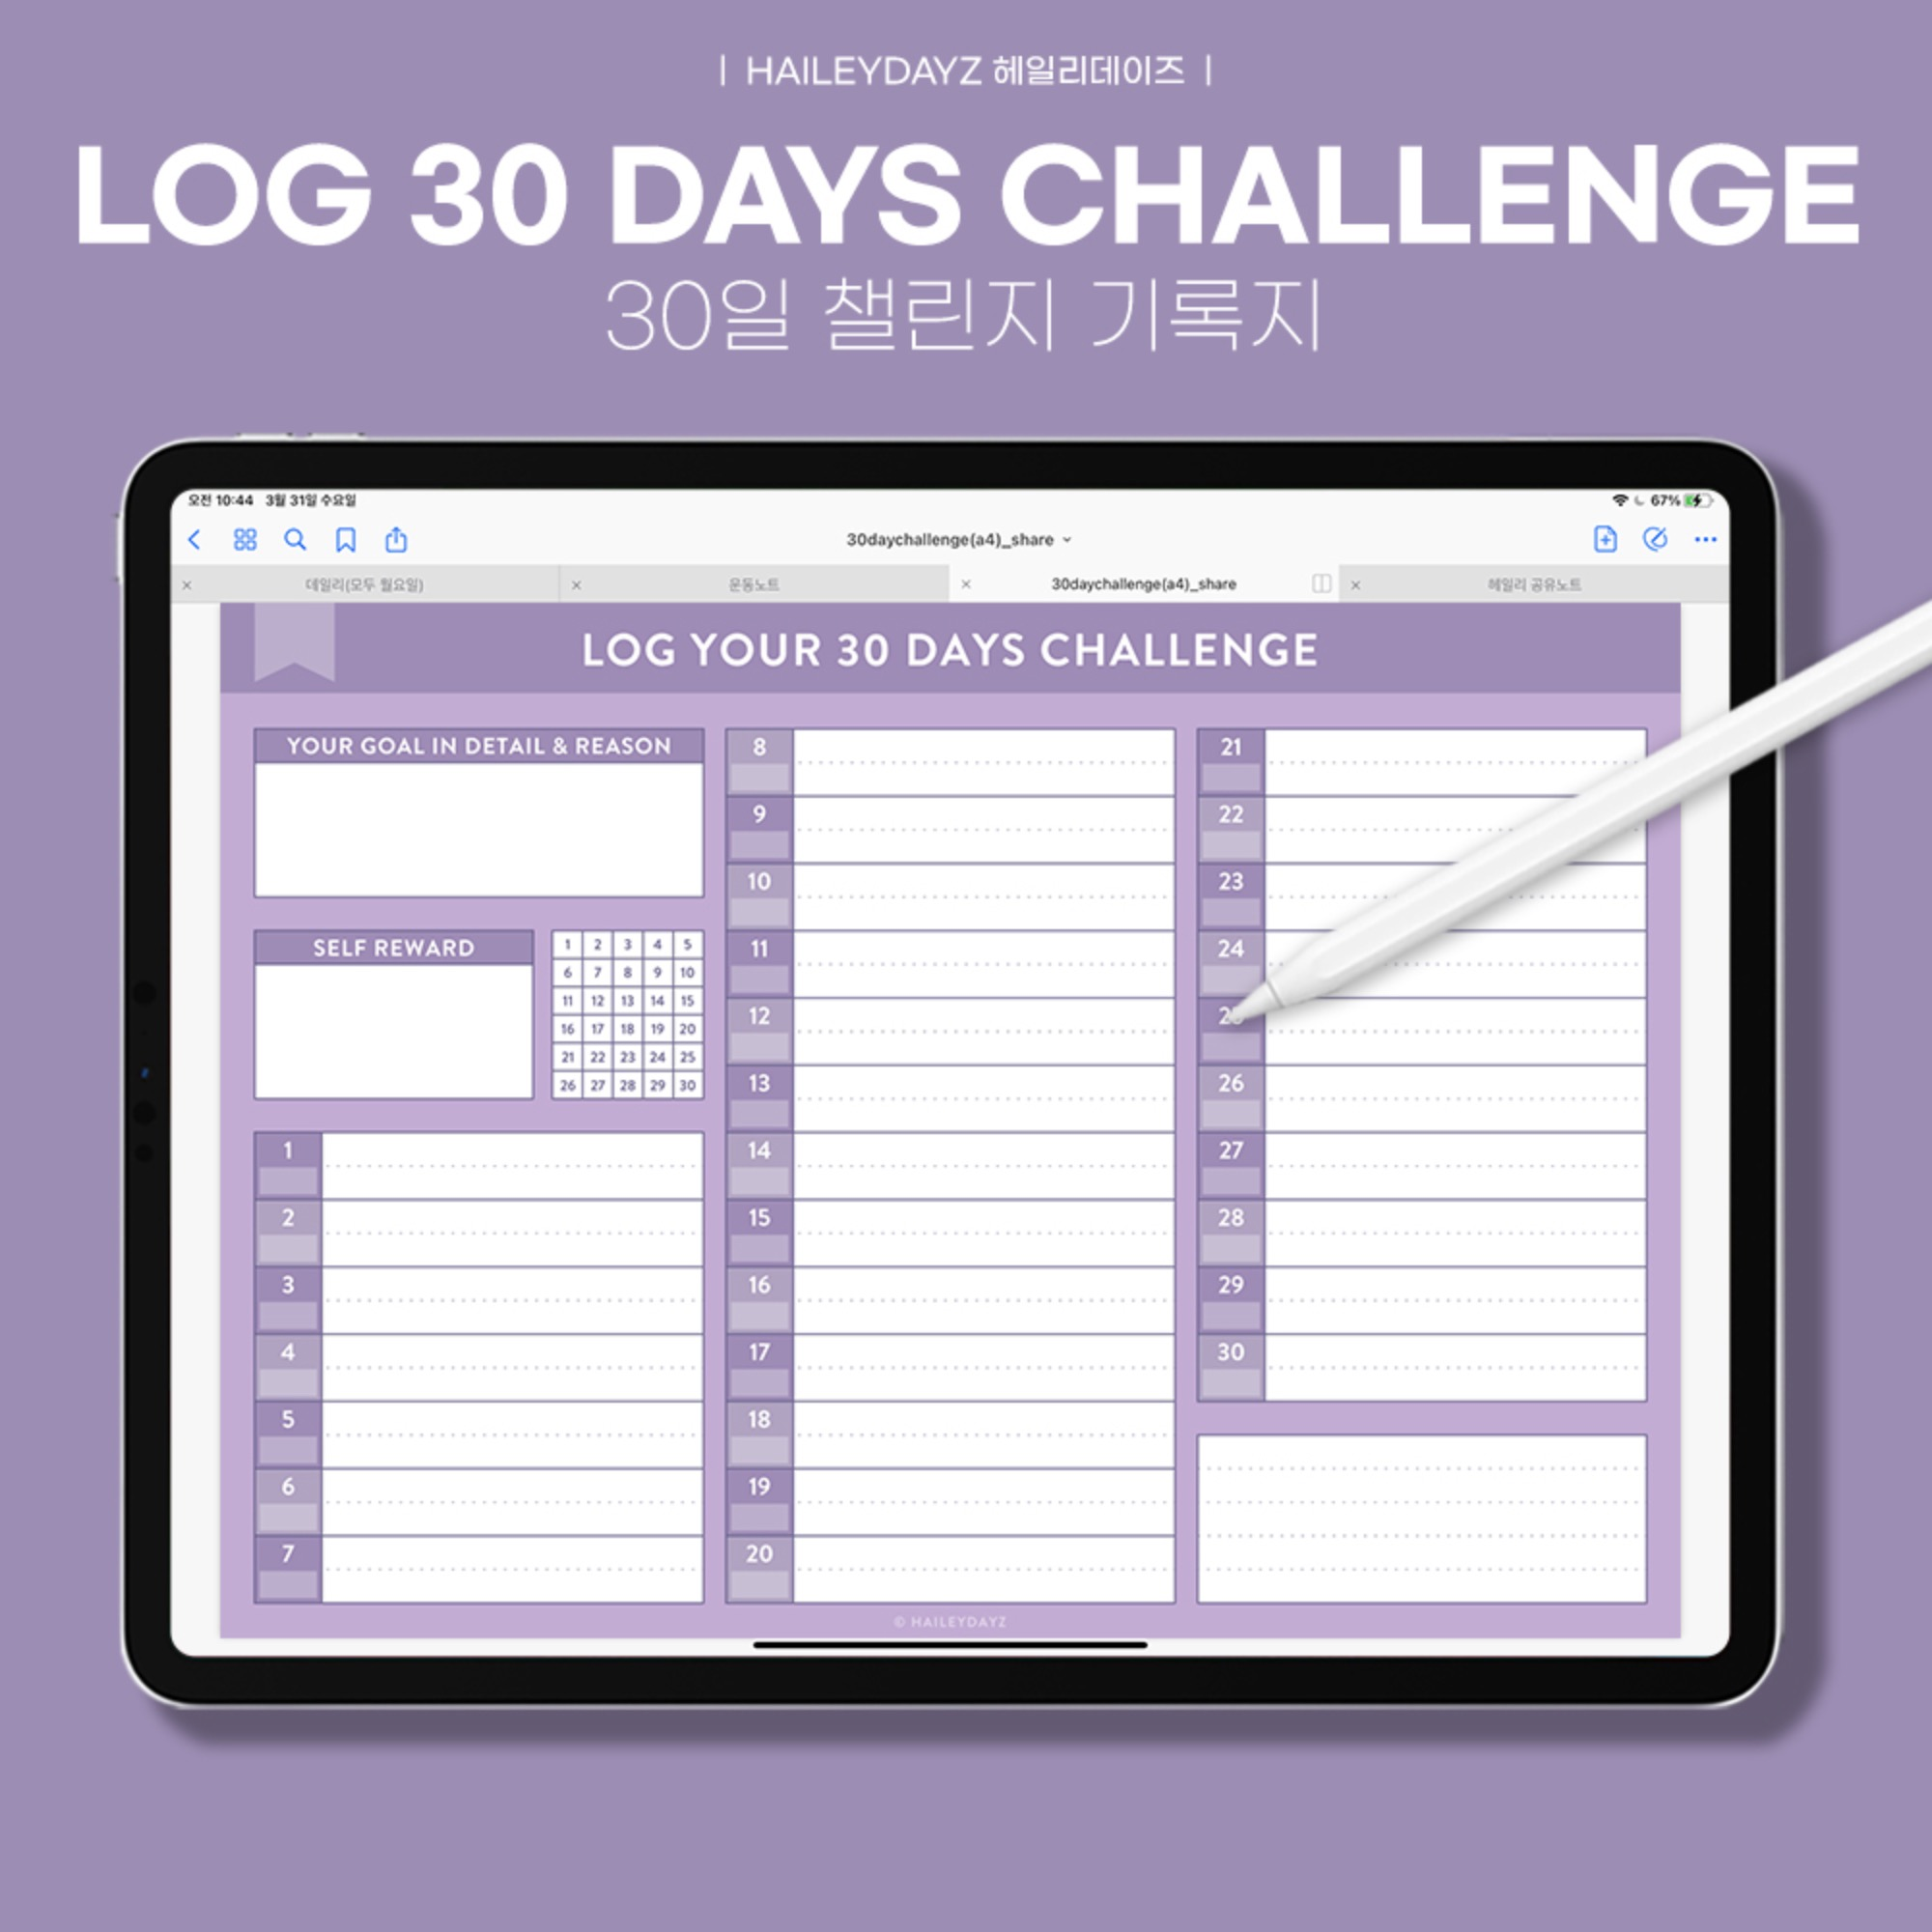 Log your 30 days challenge